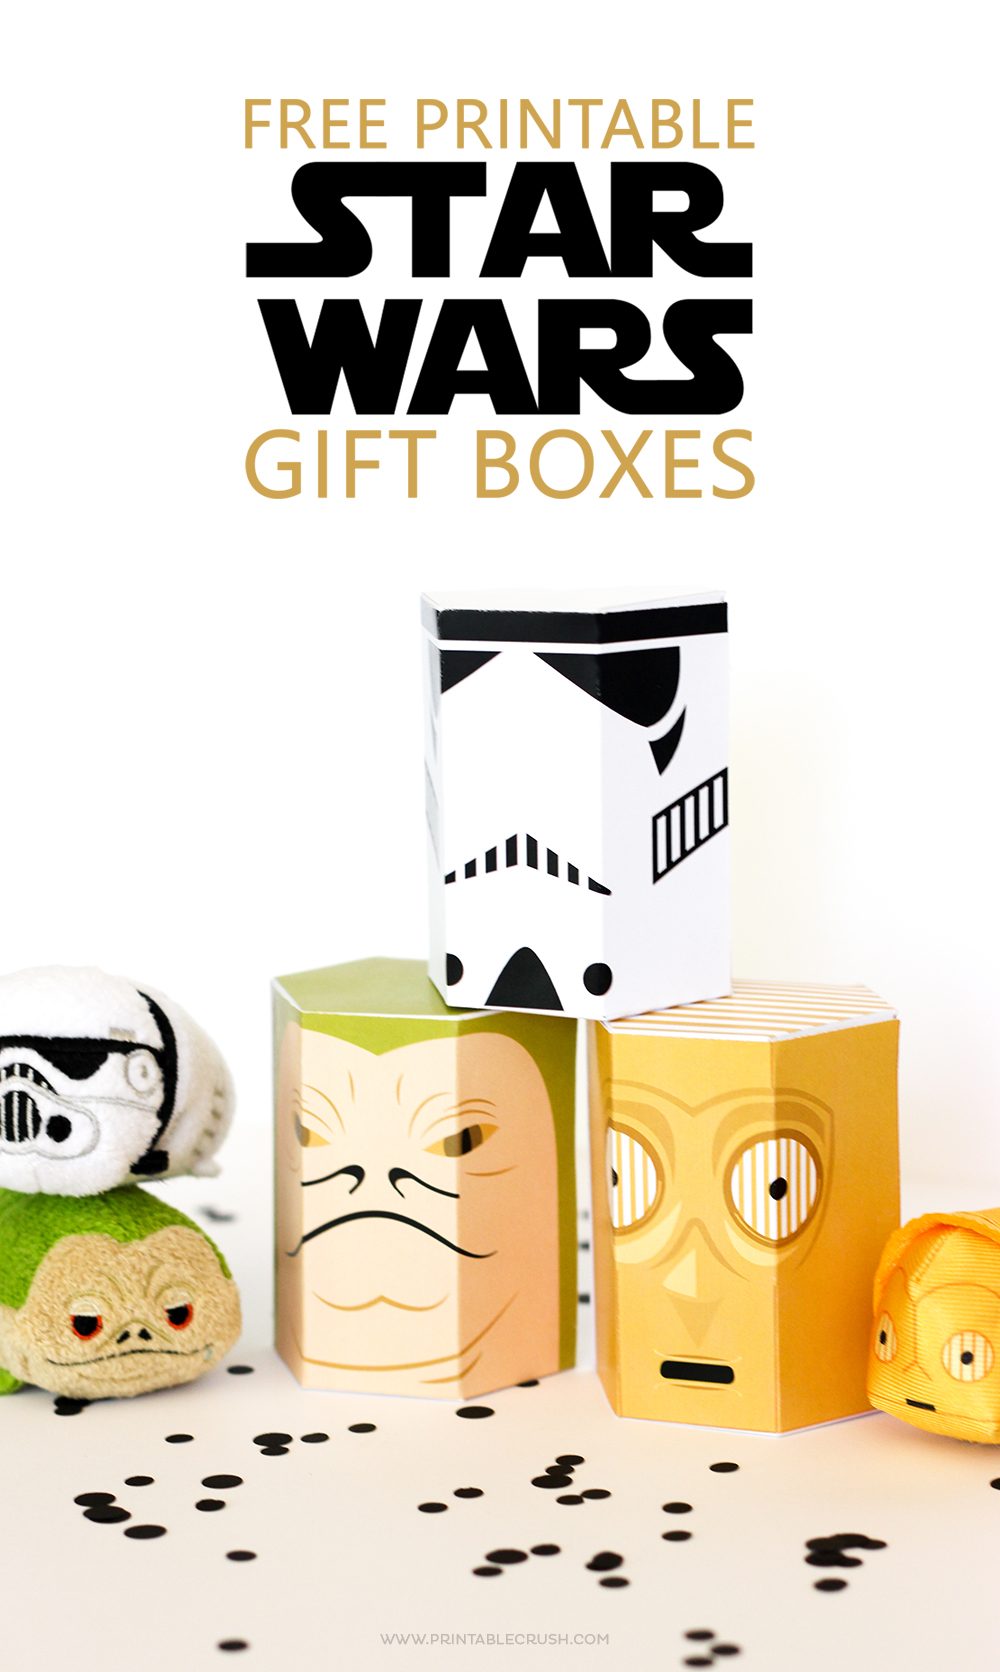 picture regarding Star Wars Printable identified as Cost-free Star Wars Printable Present Containers - Printable Crush